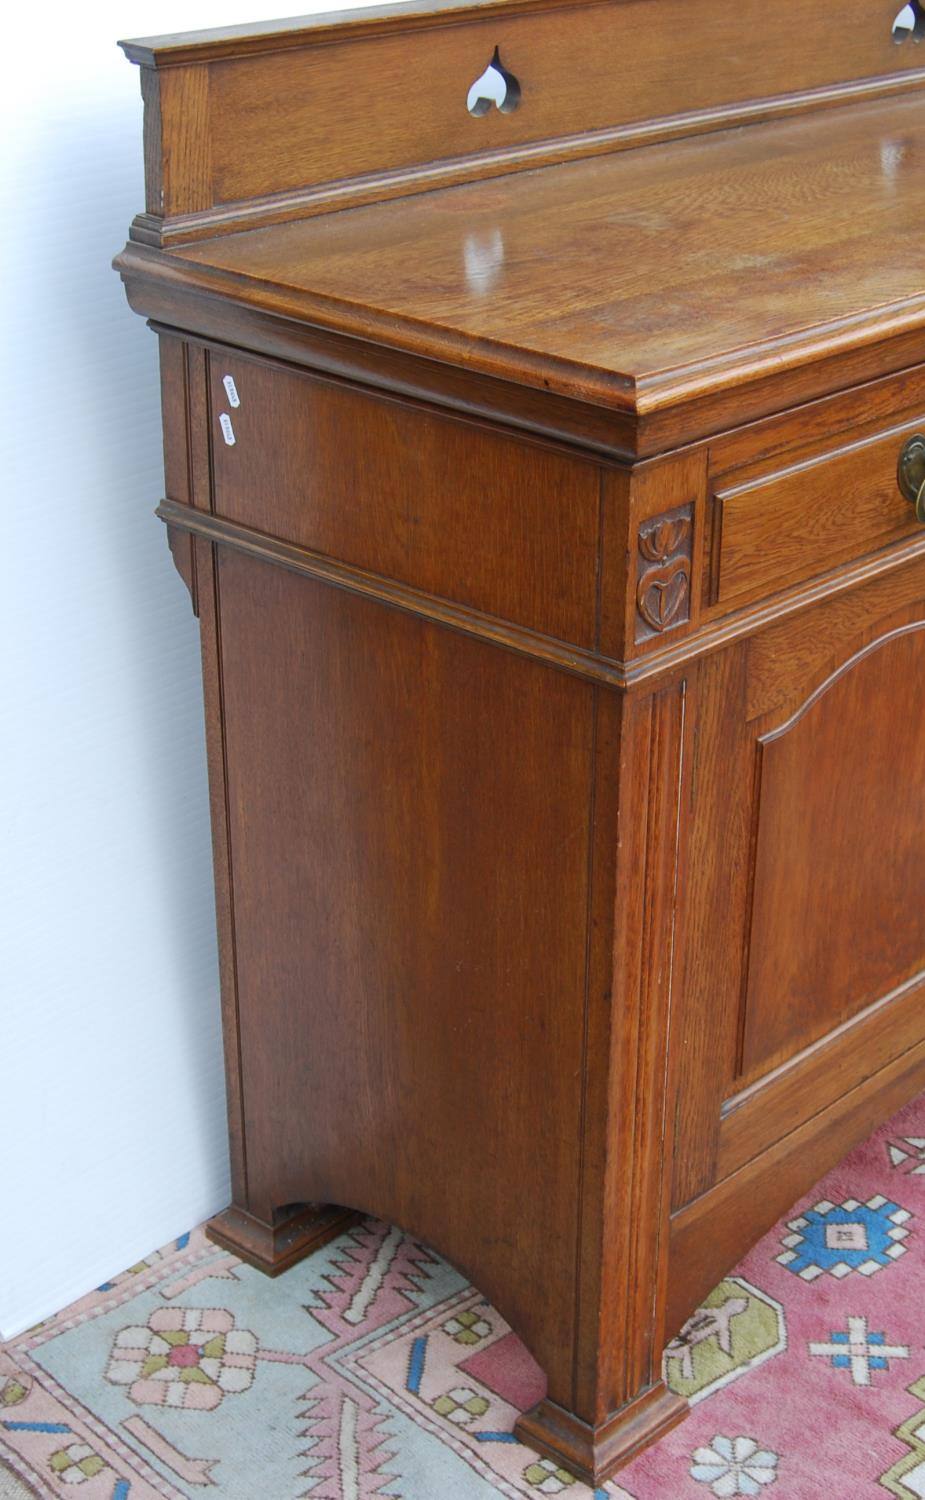 Aesthetic oak sideboard, the back panel with pierced inverted hearts, moulded rectangular top over - Image 7 of 7